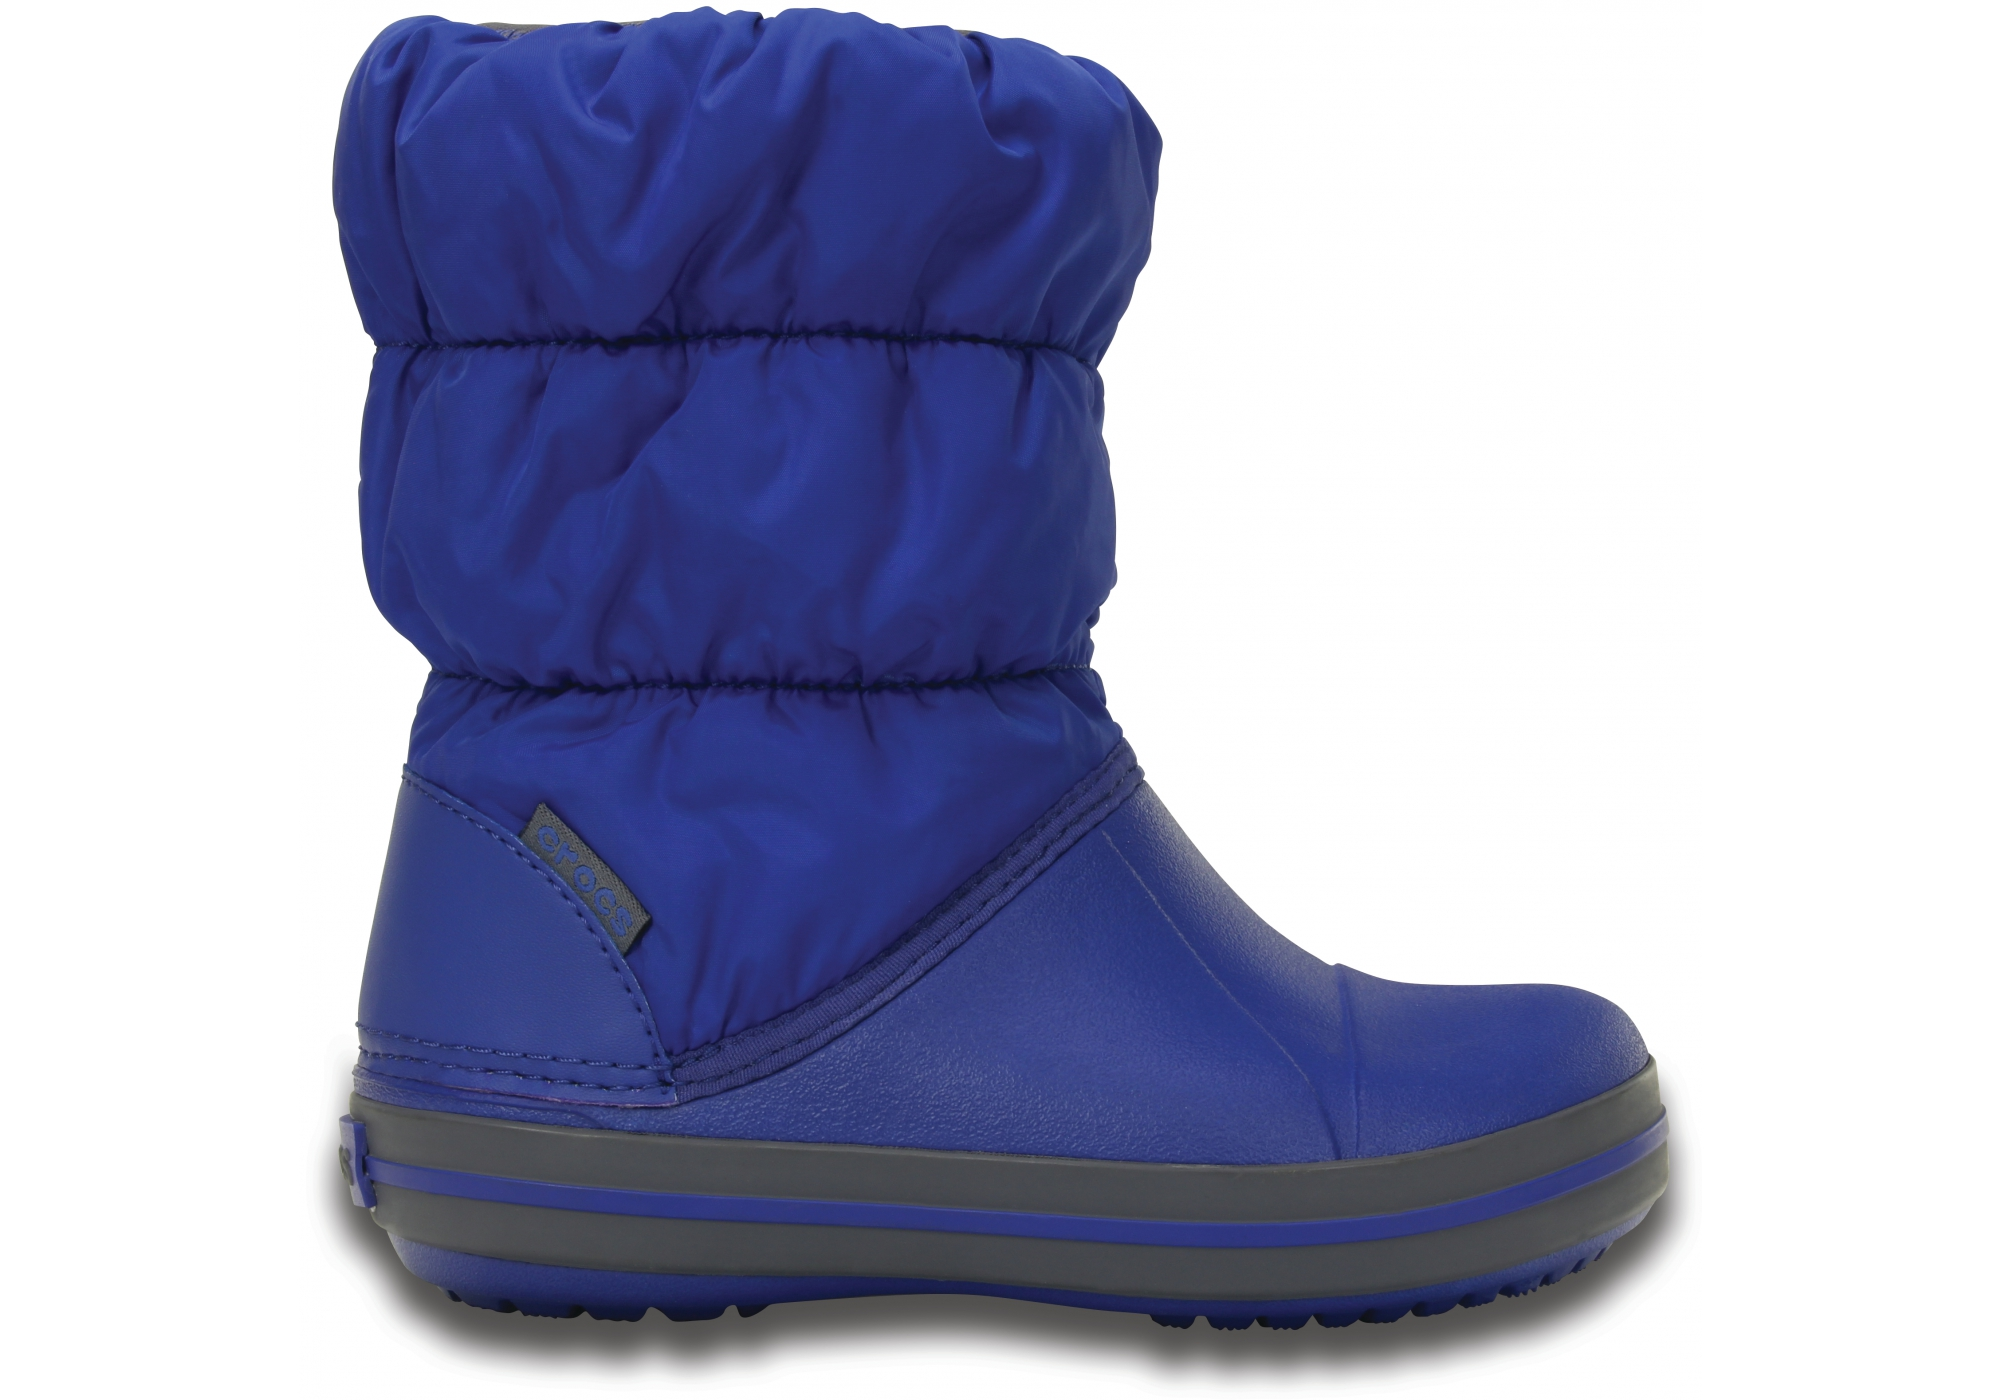 Crocs modré sněhule Winter Puff Boot Kids Cerulean Blue - C10